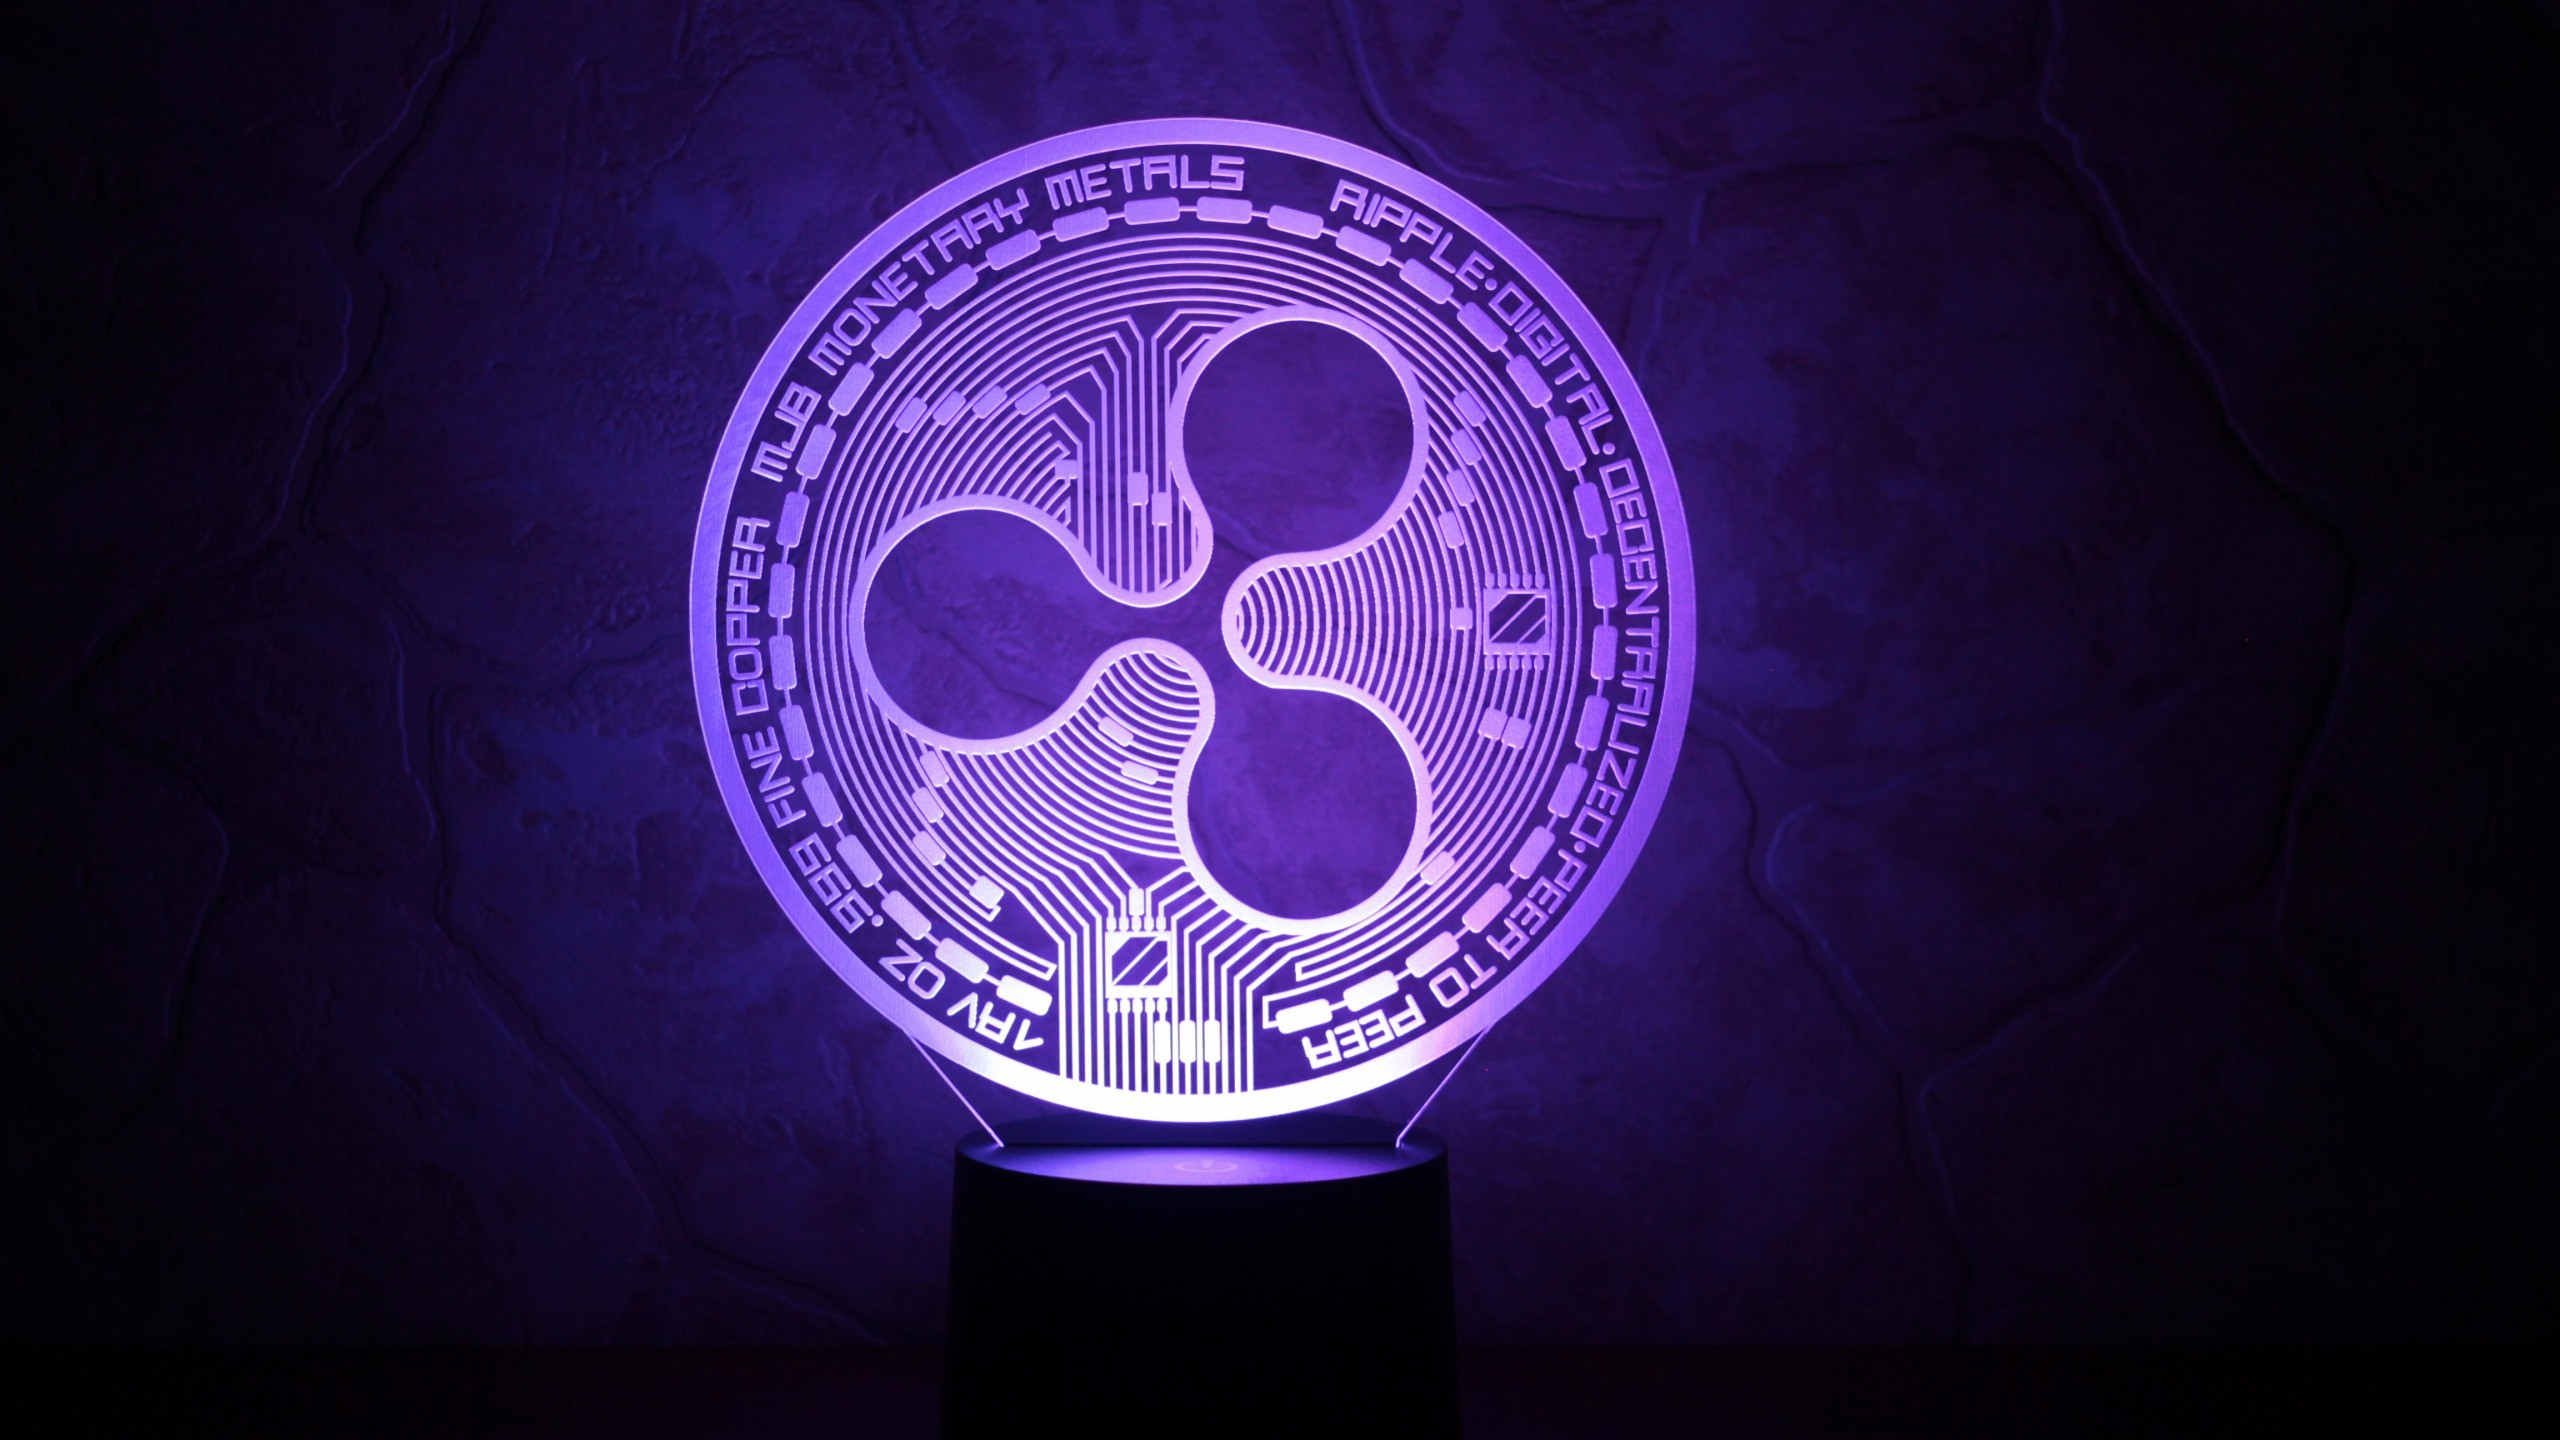 SEC V. Ripple: Ripple Urges Court To Disclose SEC's XRP Holdings